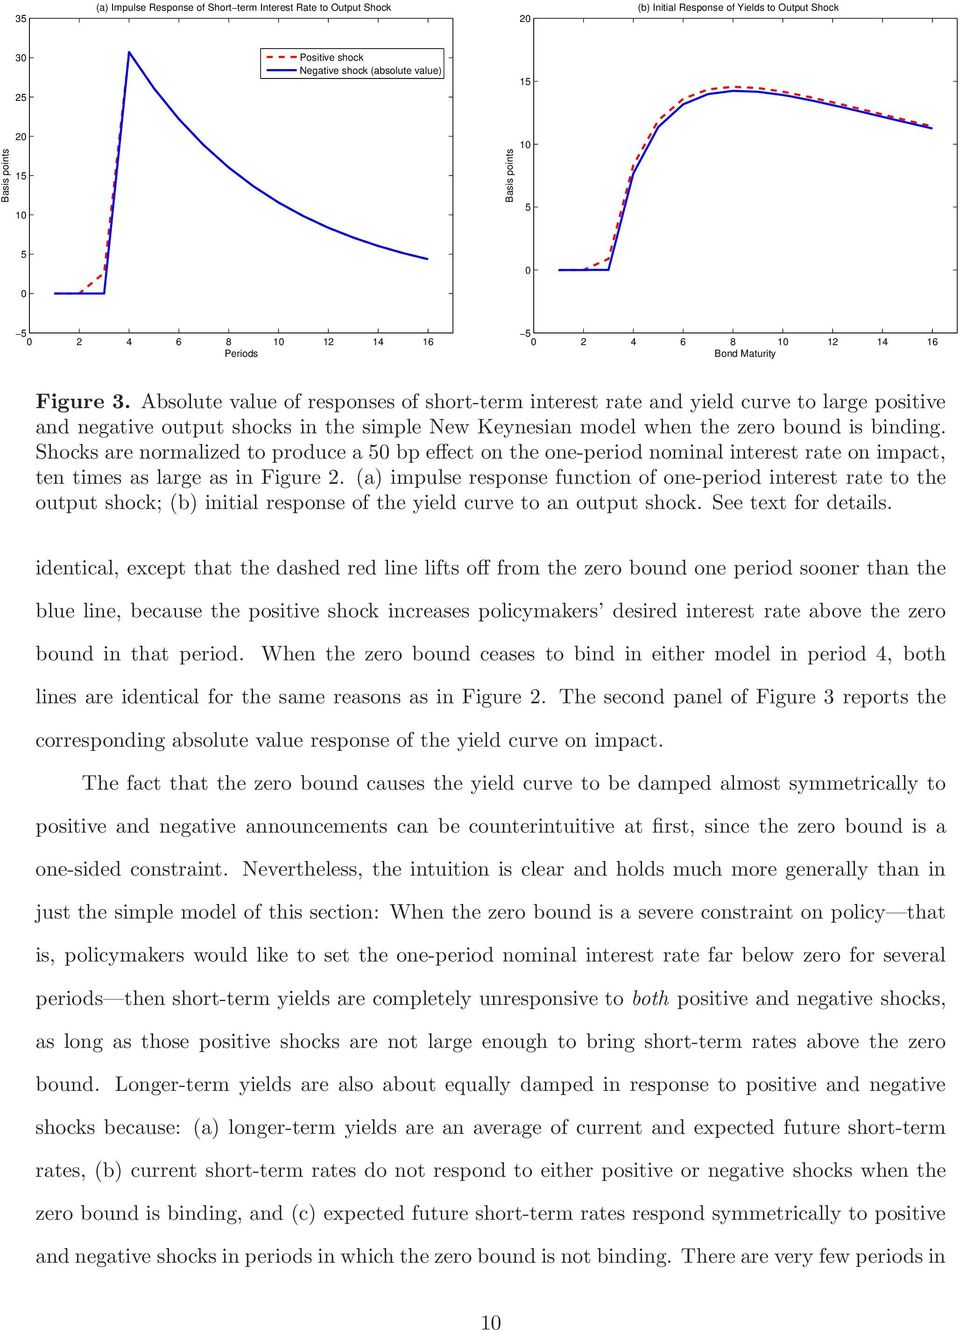 Absolute value of responses of short-term interest rate and yield curve to large positive and negative output shocks in the simple New Keynesian model when the zero bound is binding.